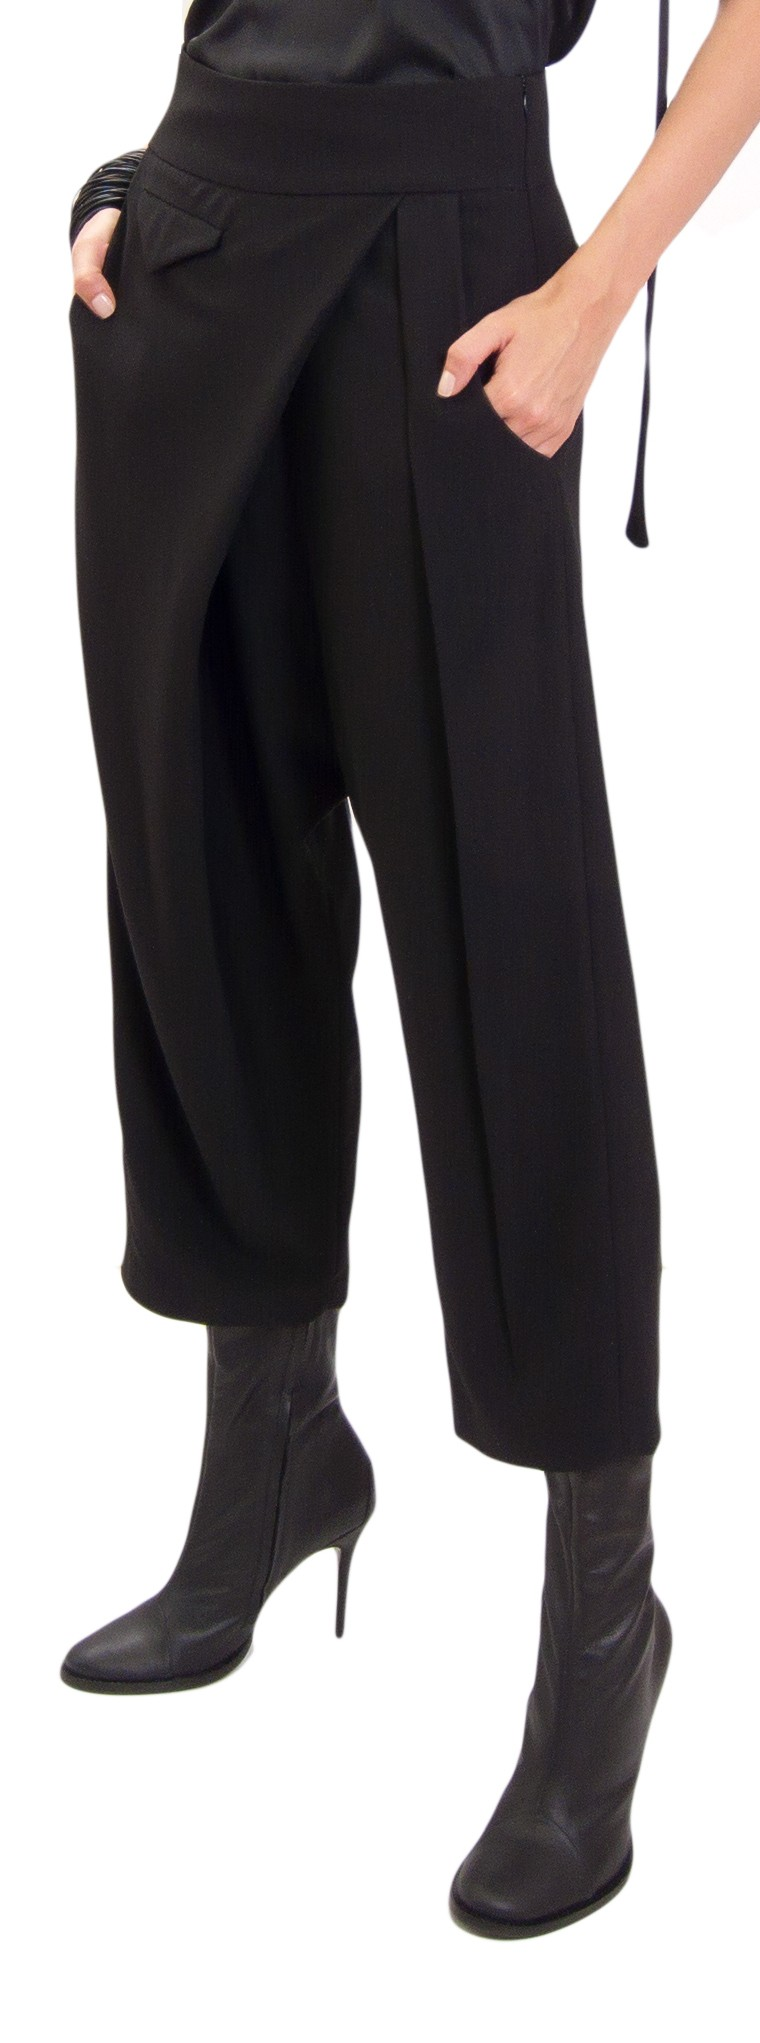 JSP ASYMMETRIC PANTS